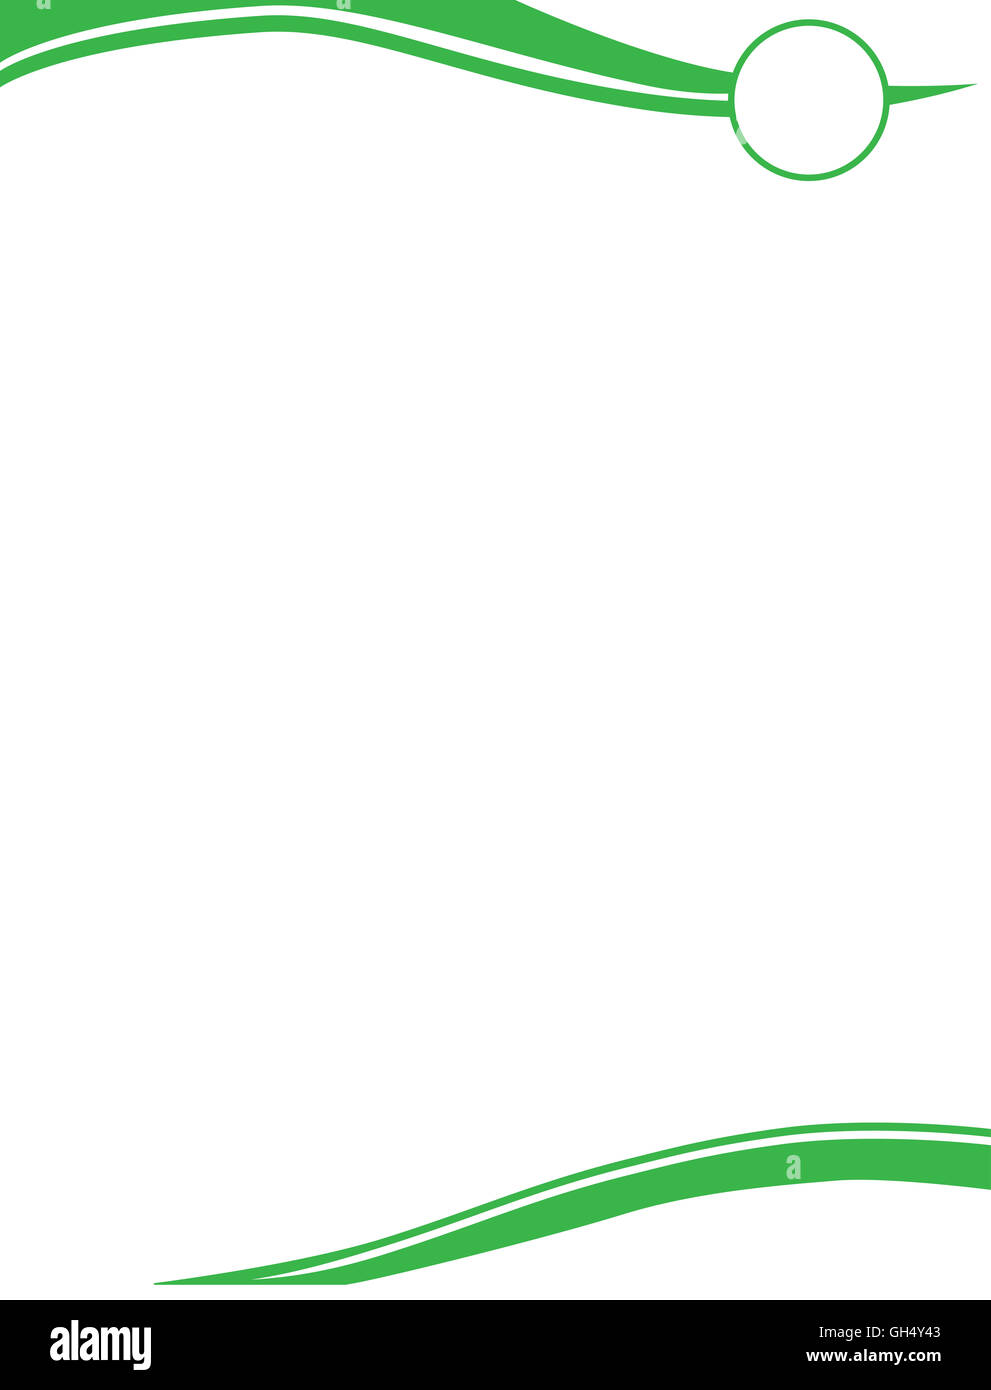 Green Swirl Letterhead Template with Circle for Logo - Stock Image